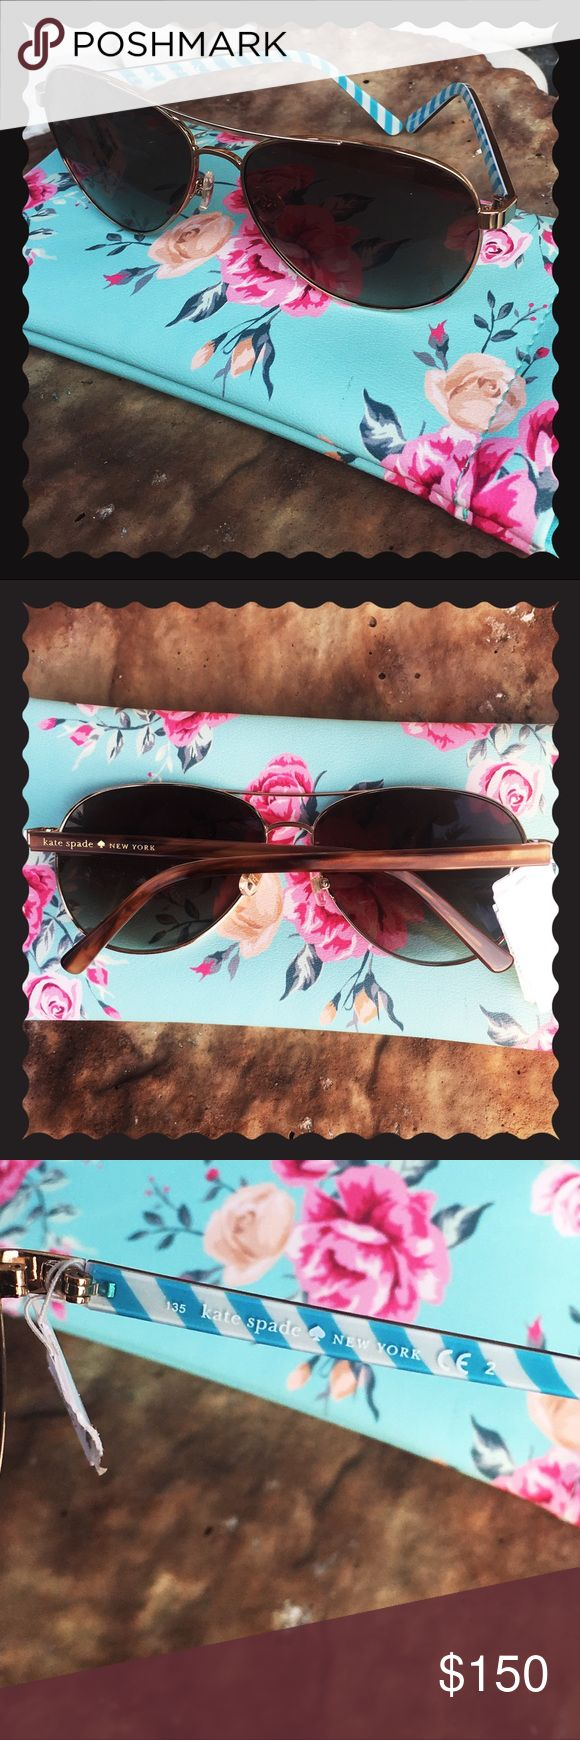 NEW kate spade aviator blossom sunglasses 😎 BRAND new without original case (comes with case pictured though if purchased at listed price only!).  Blue & white stripe design on interior side of stems.  Gold color frame.  Brown exterior stem color with kate spade new york logo.  No defects.  135 mm temple to temple. 14 mm on bridge. 🔵next day shipping ‼️ no trades kate spade Accessories Sunglasses